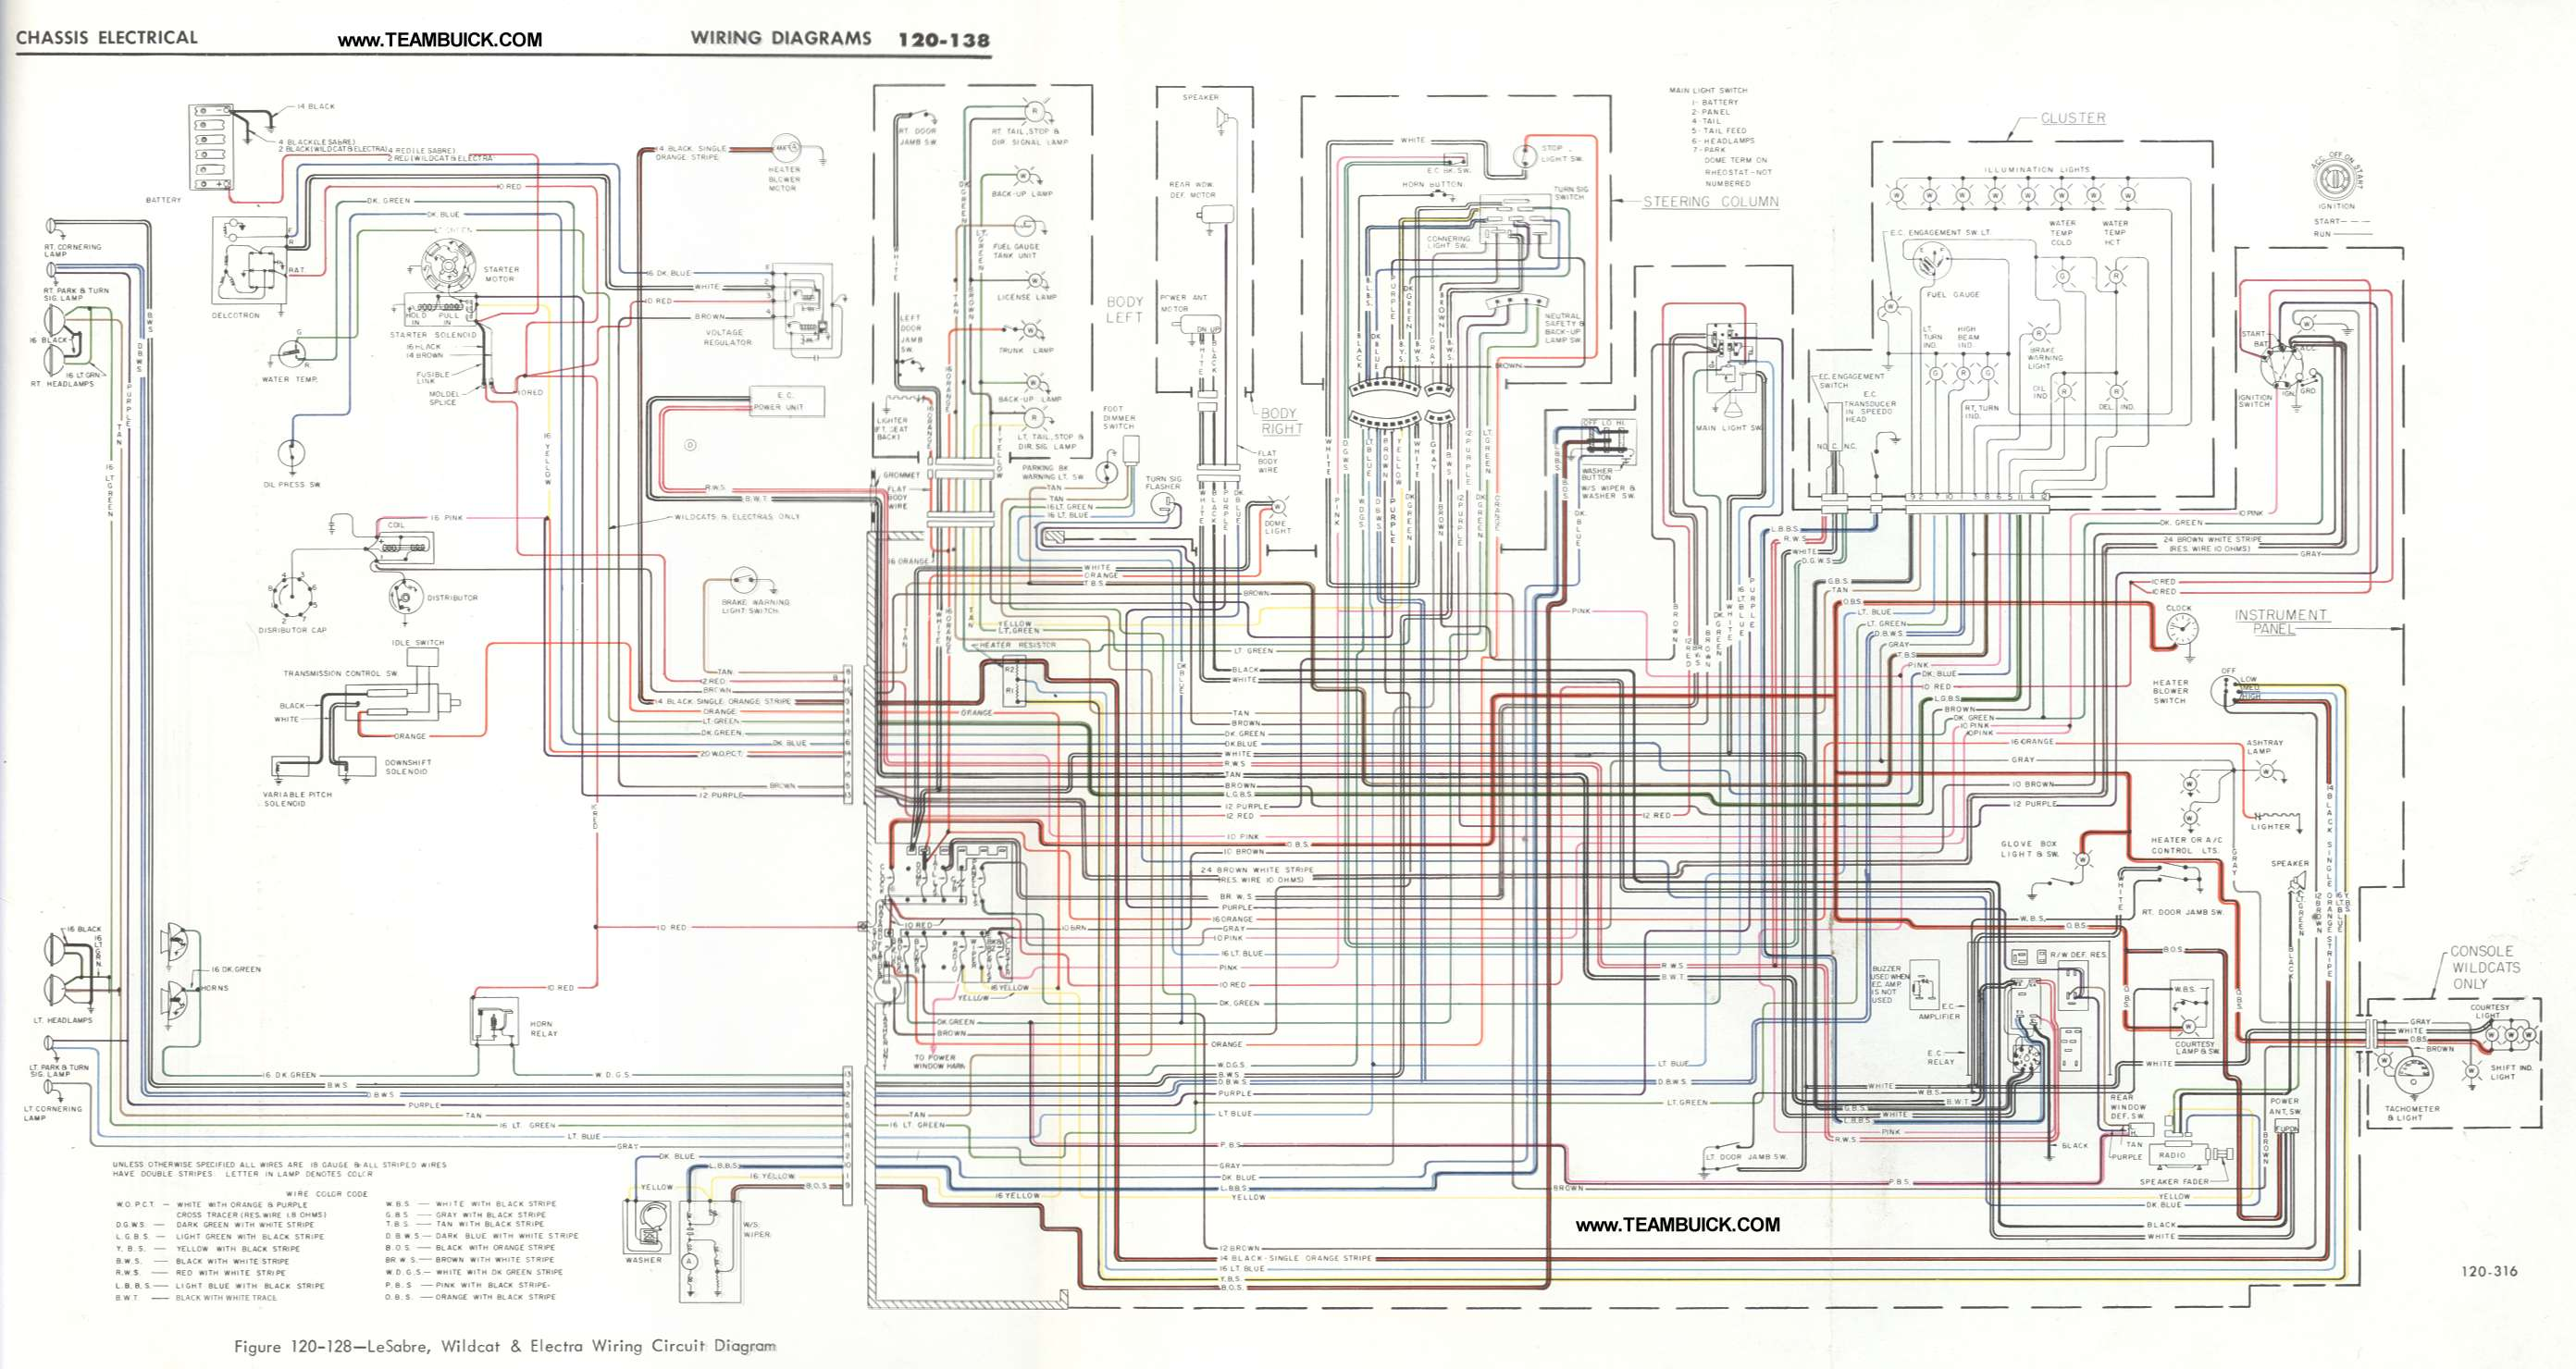 electra wiring diagram   22 wiring diagram images